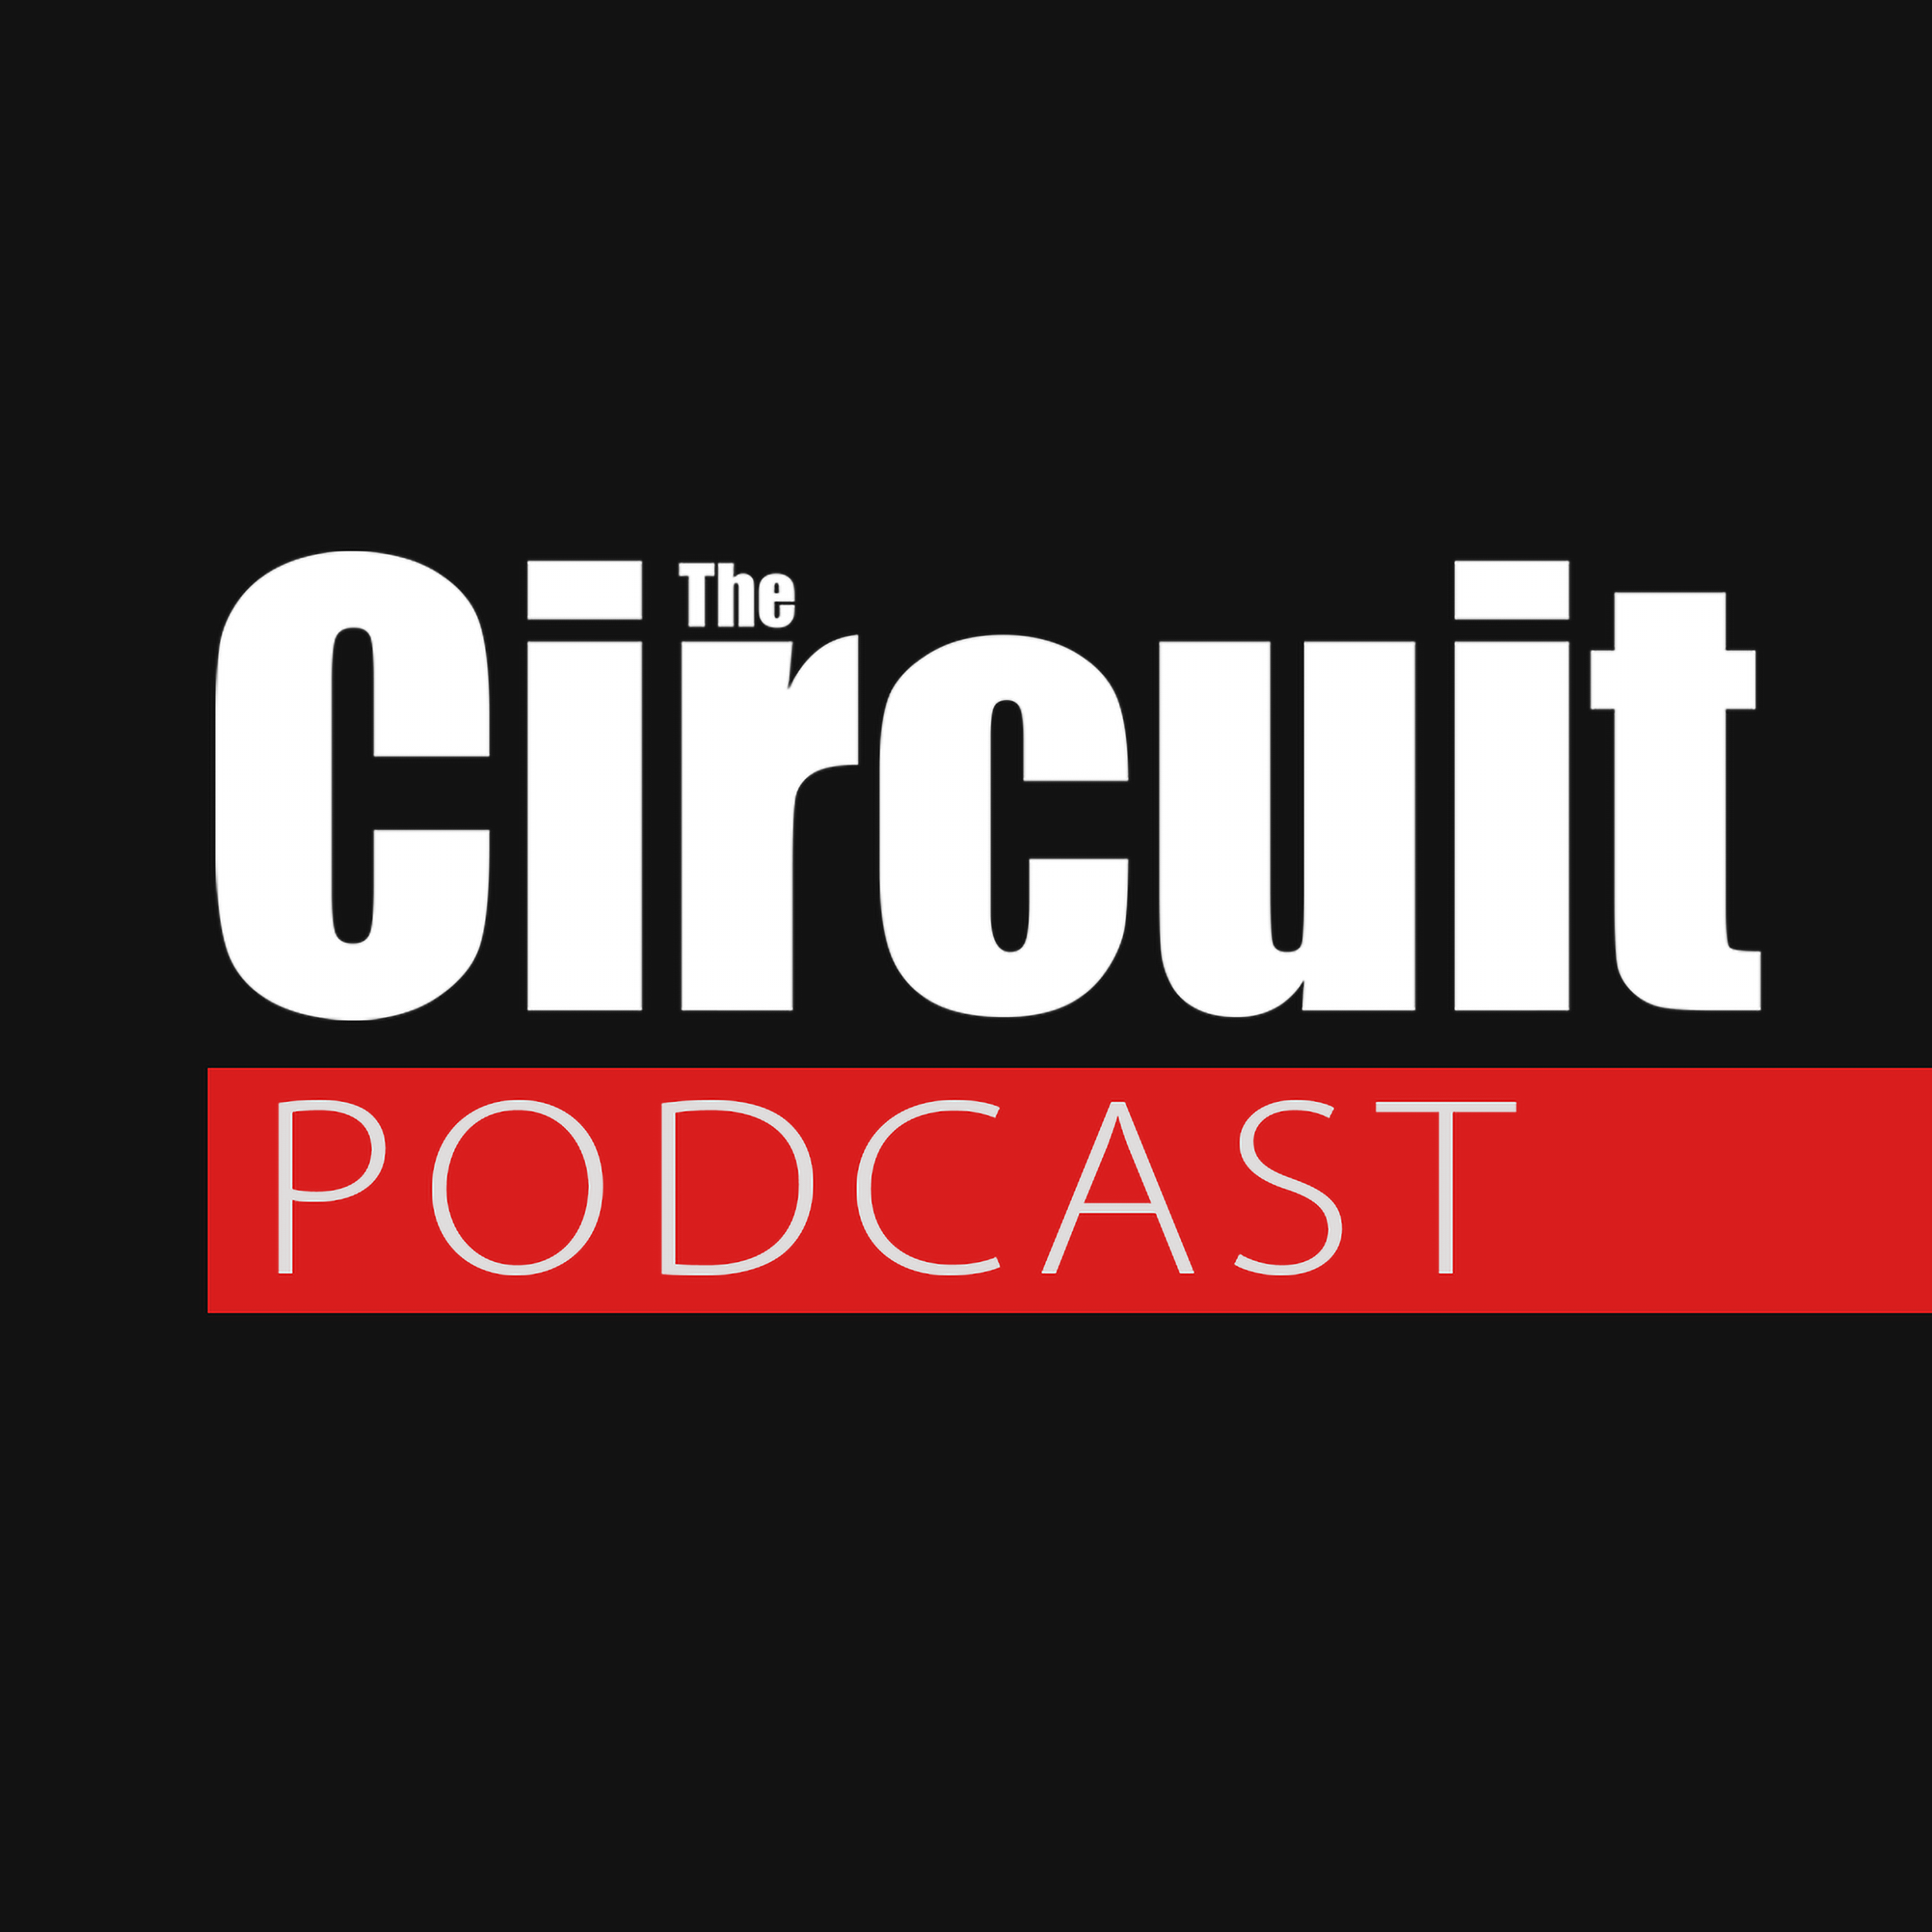 Show artwork for The Circuit Magazine Podcast